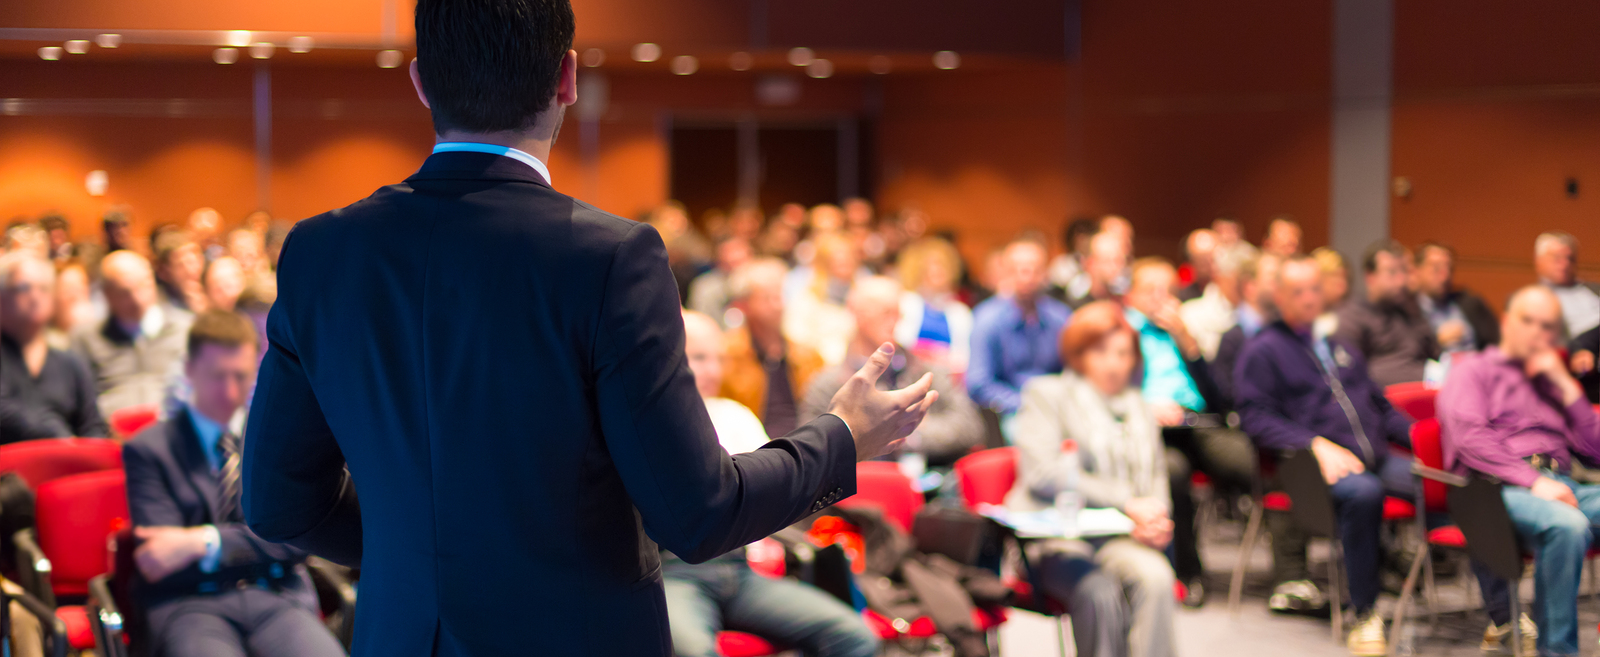 bigstock-Speaker-at-Business-Conference-67409458